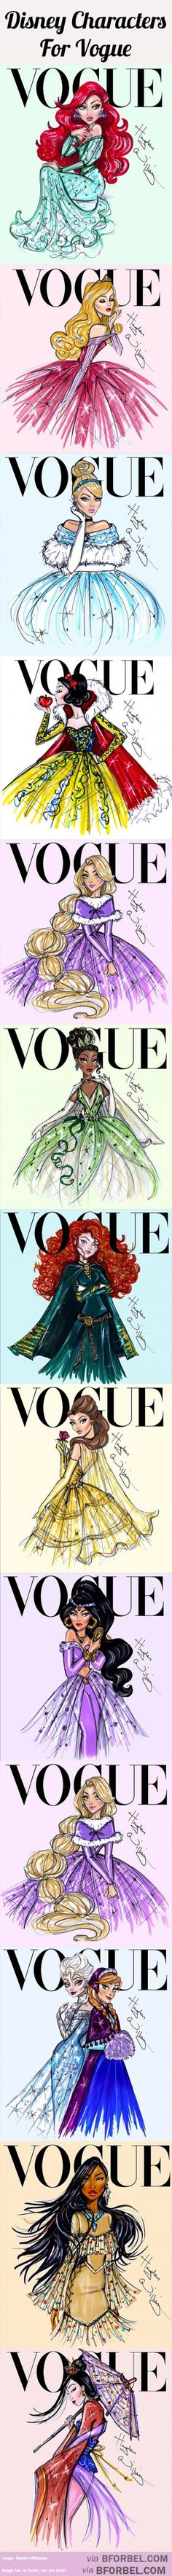 13 Disney Princesses Pose For The Cover Of Vogue…